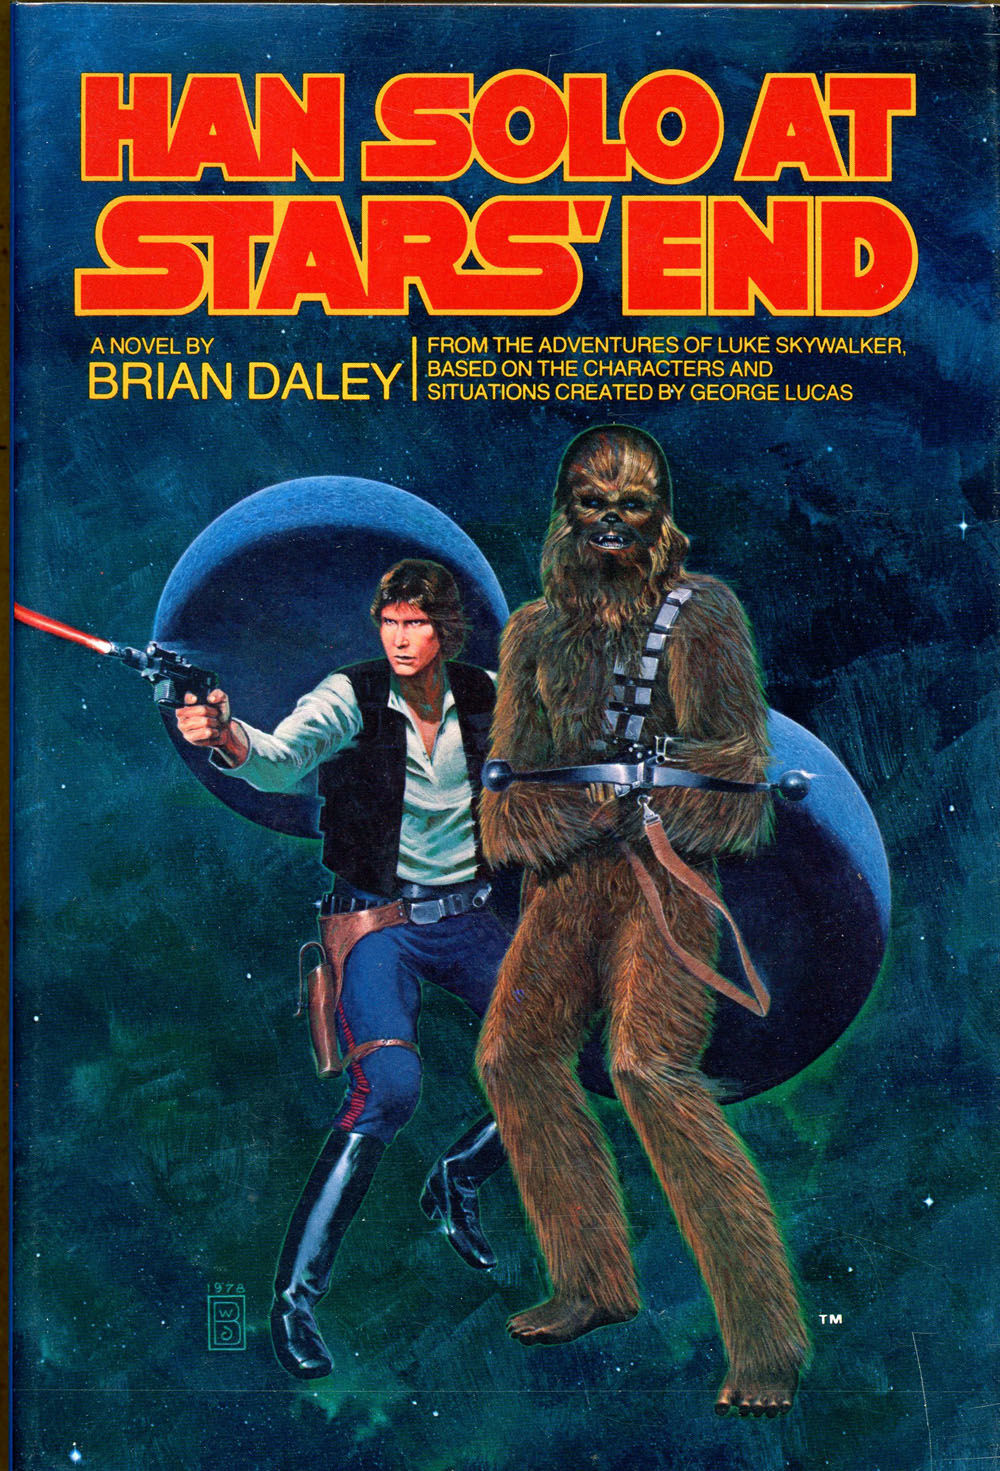 Han Solo at stars end